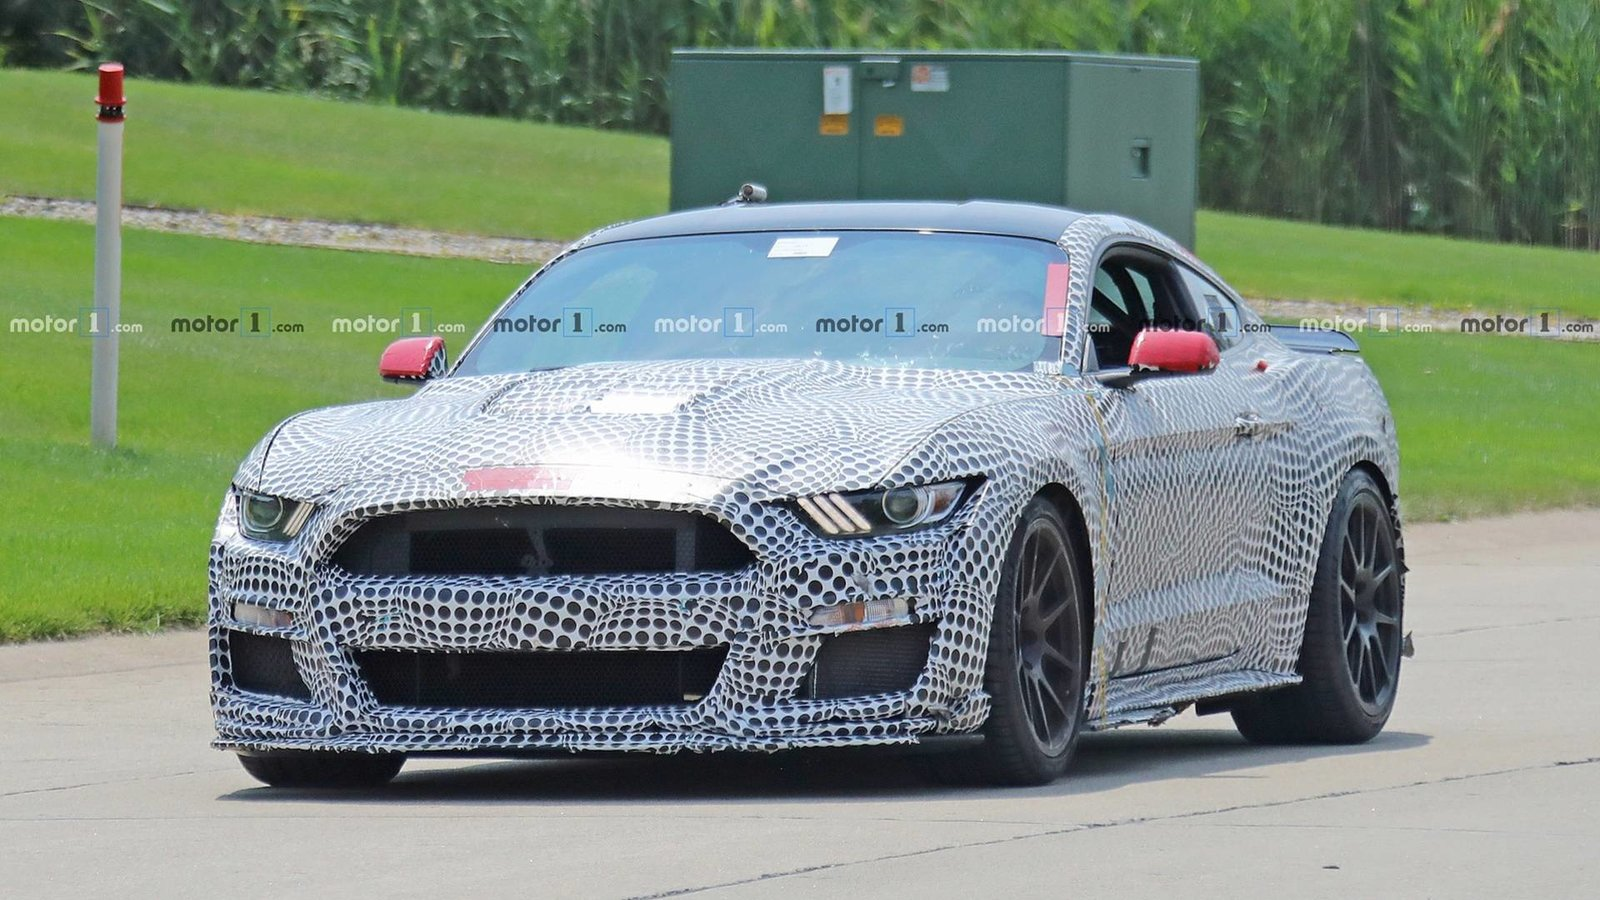 2019-ford-mustang-shelby-gt500-spy-photo.jpg